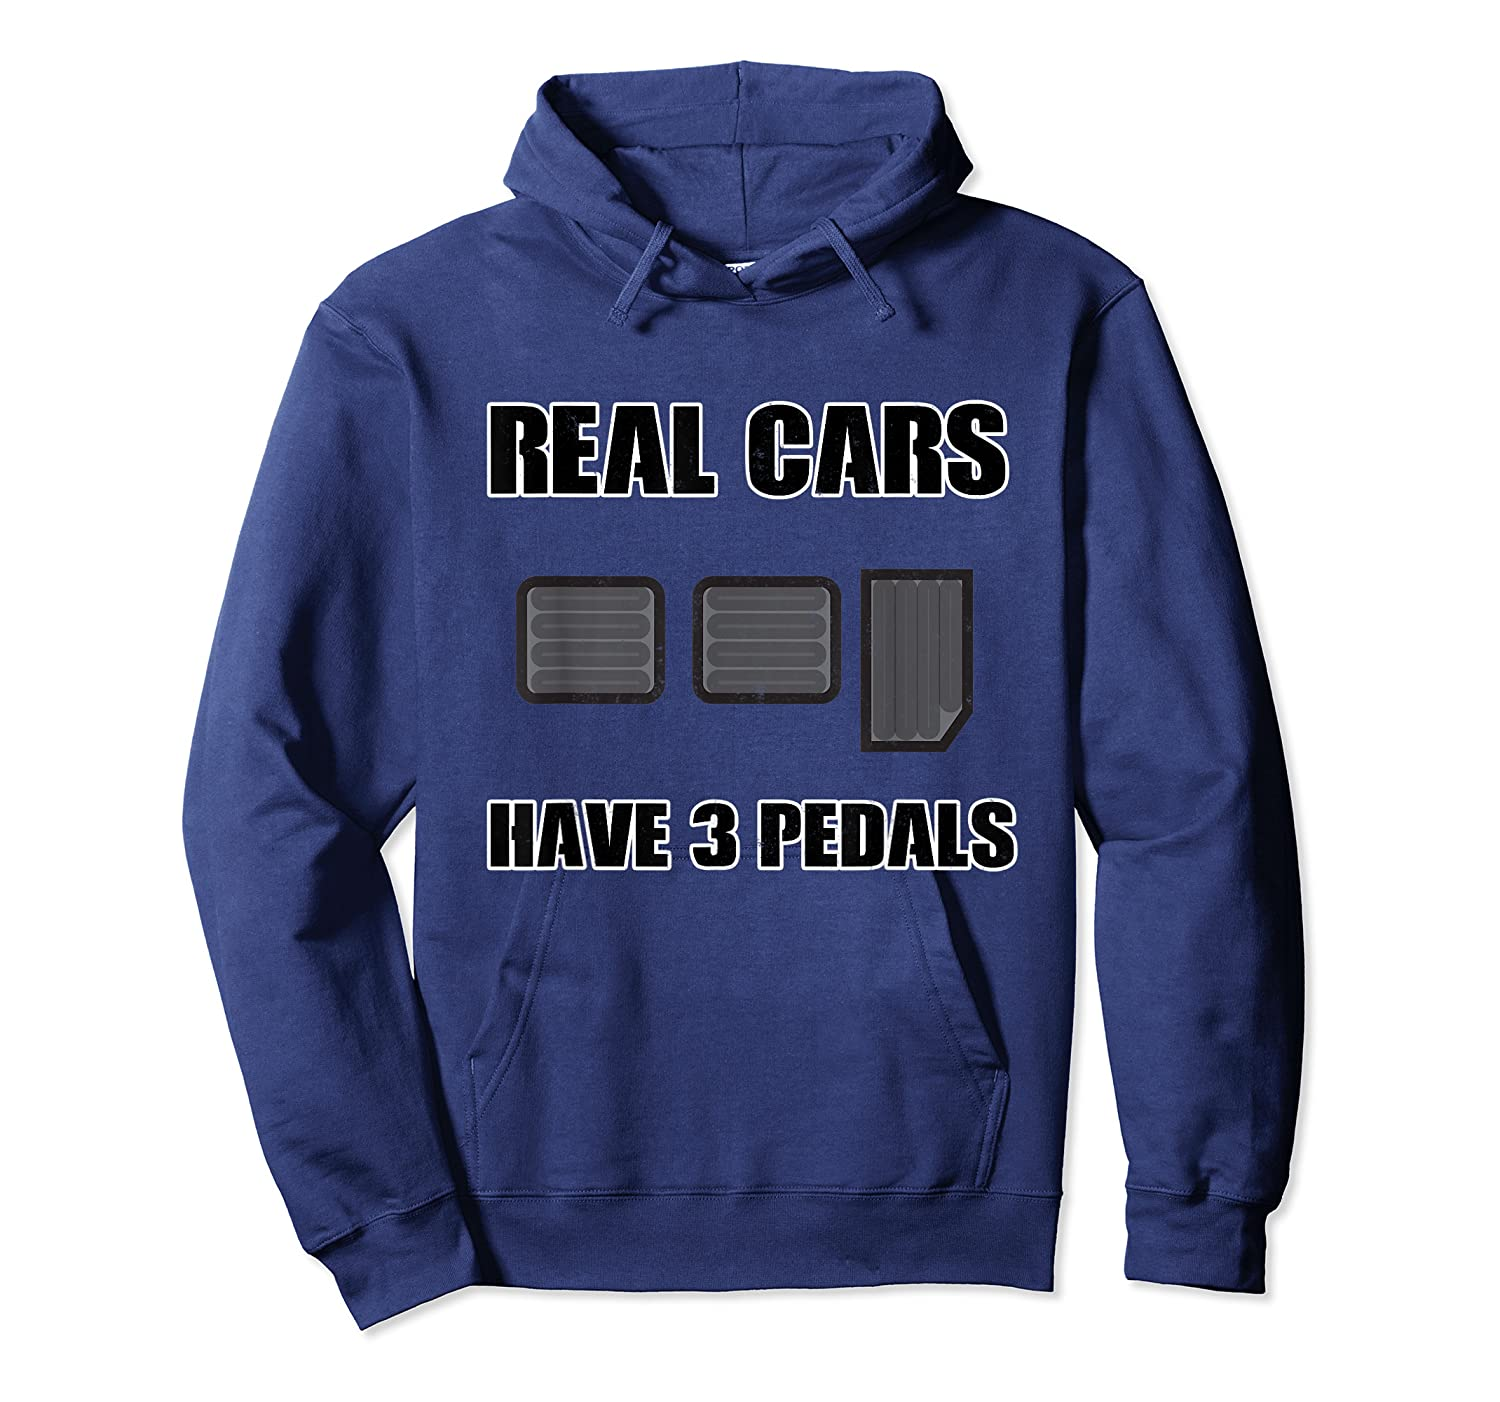 Real Cars Have 3 Pedals Design For All Self Shifter Shirts Unisex Pullover Hoodie